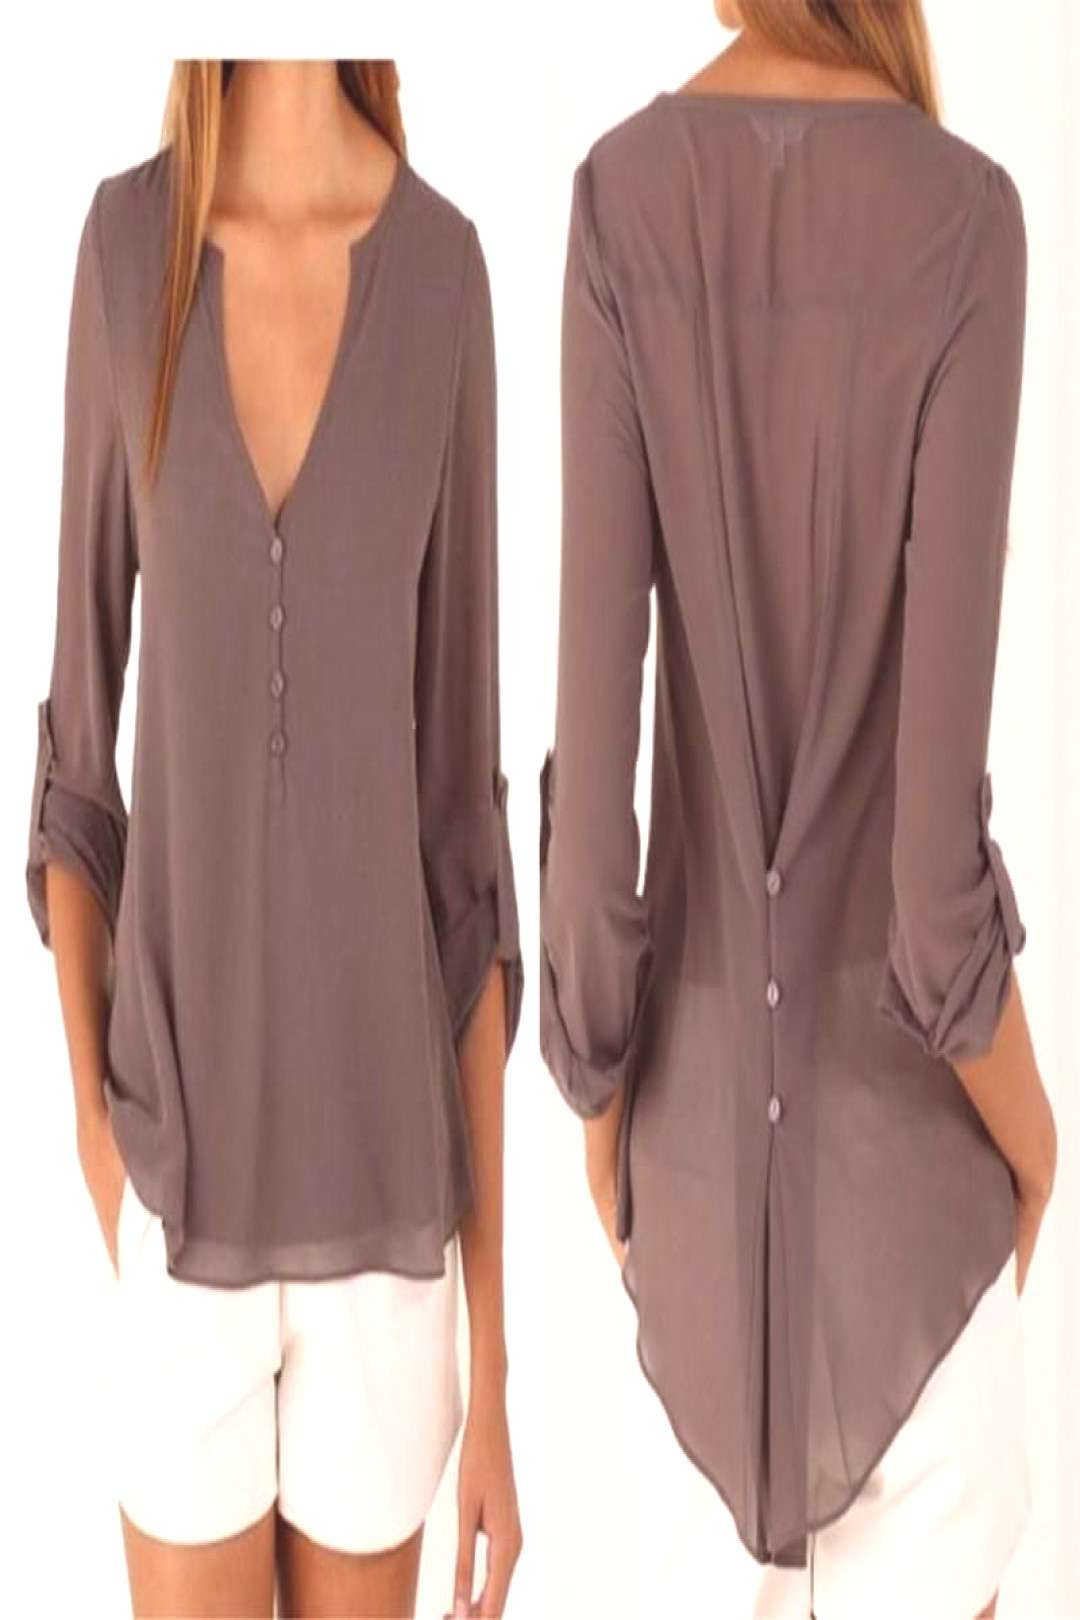 V Neck Chiffon Blouse - Long Sleeve with Buttons